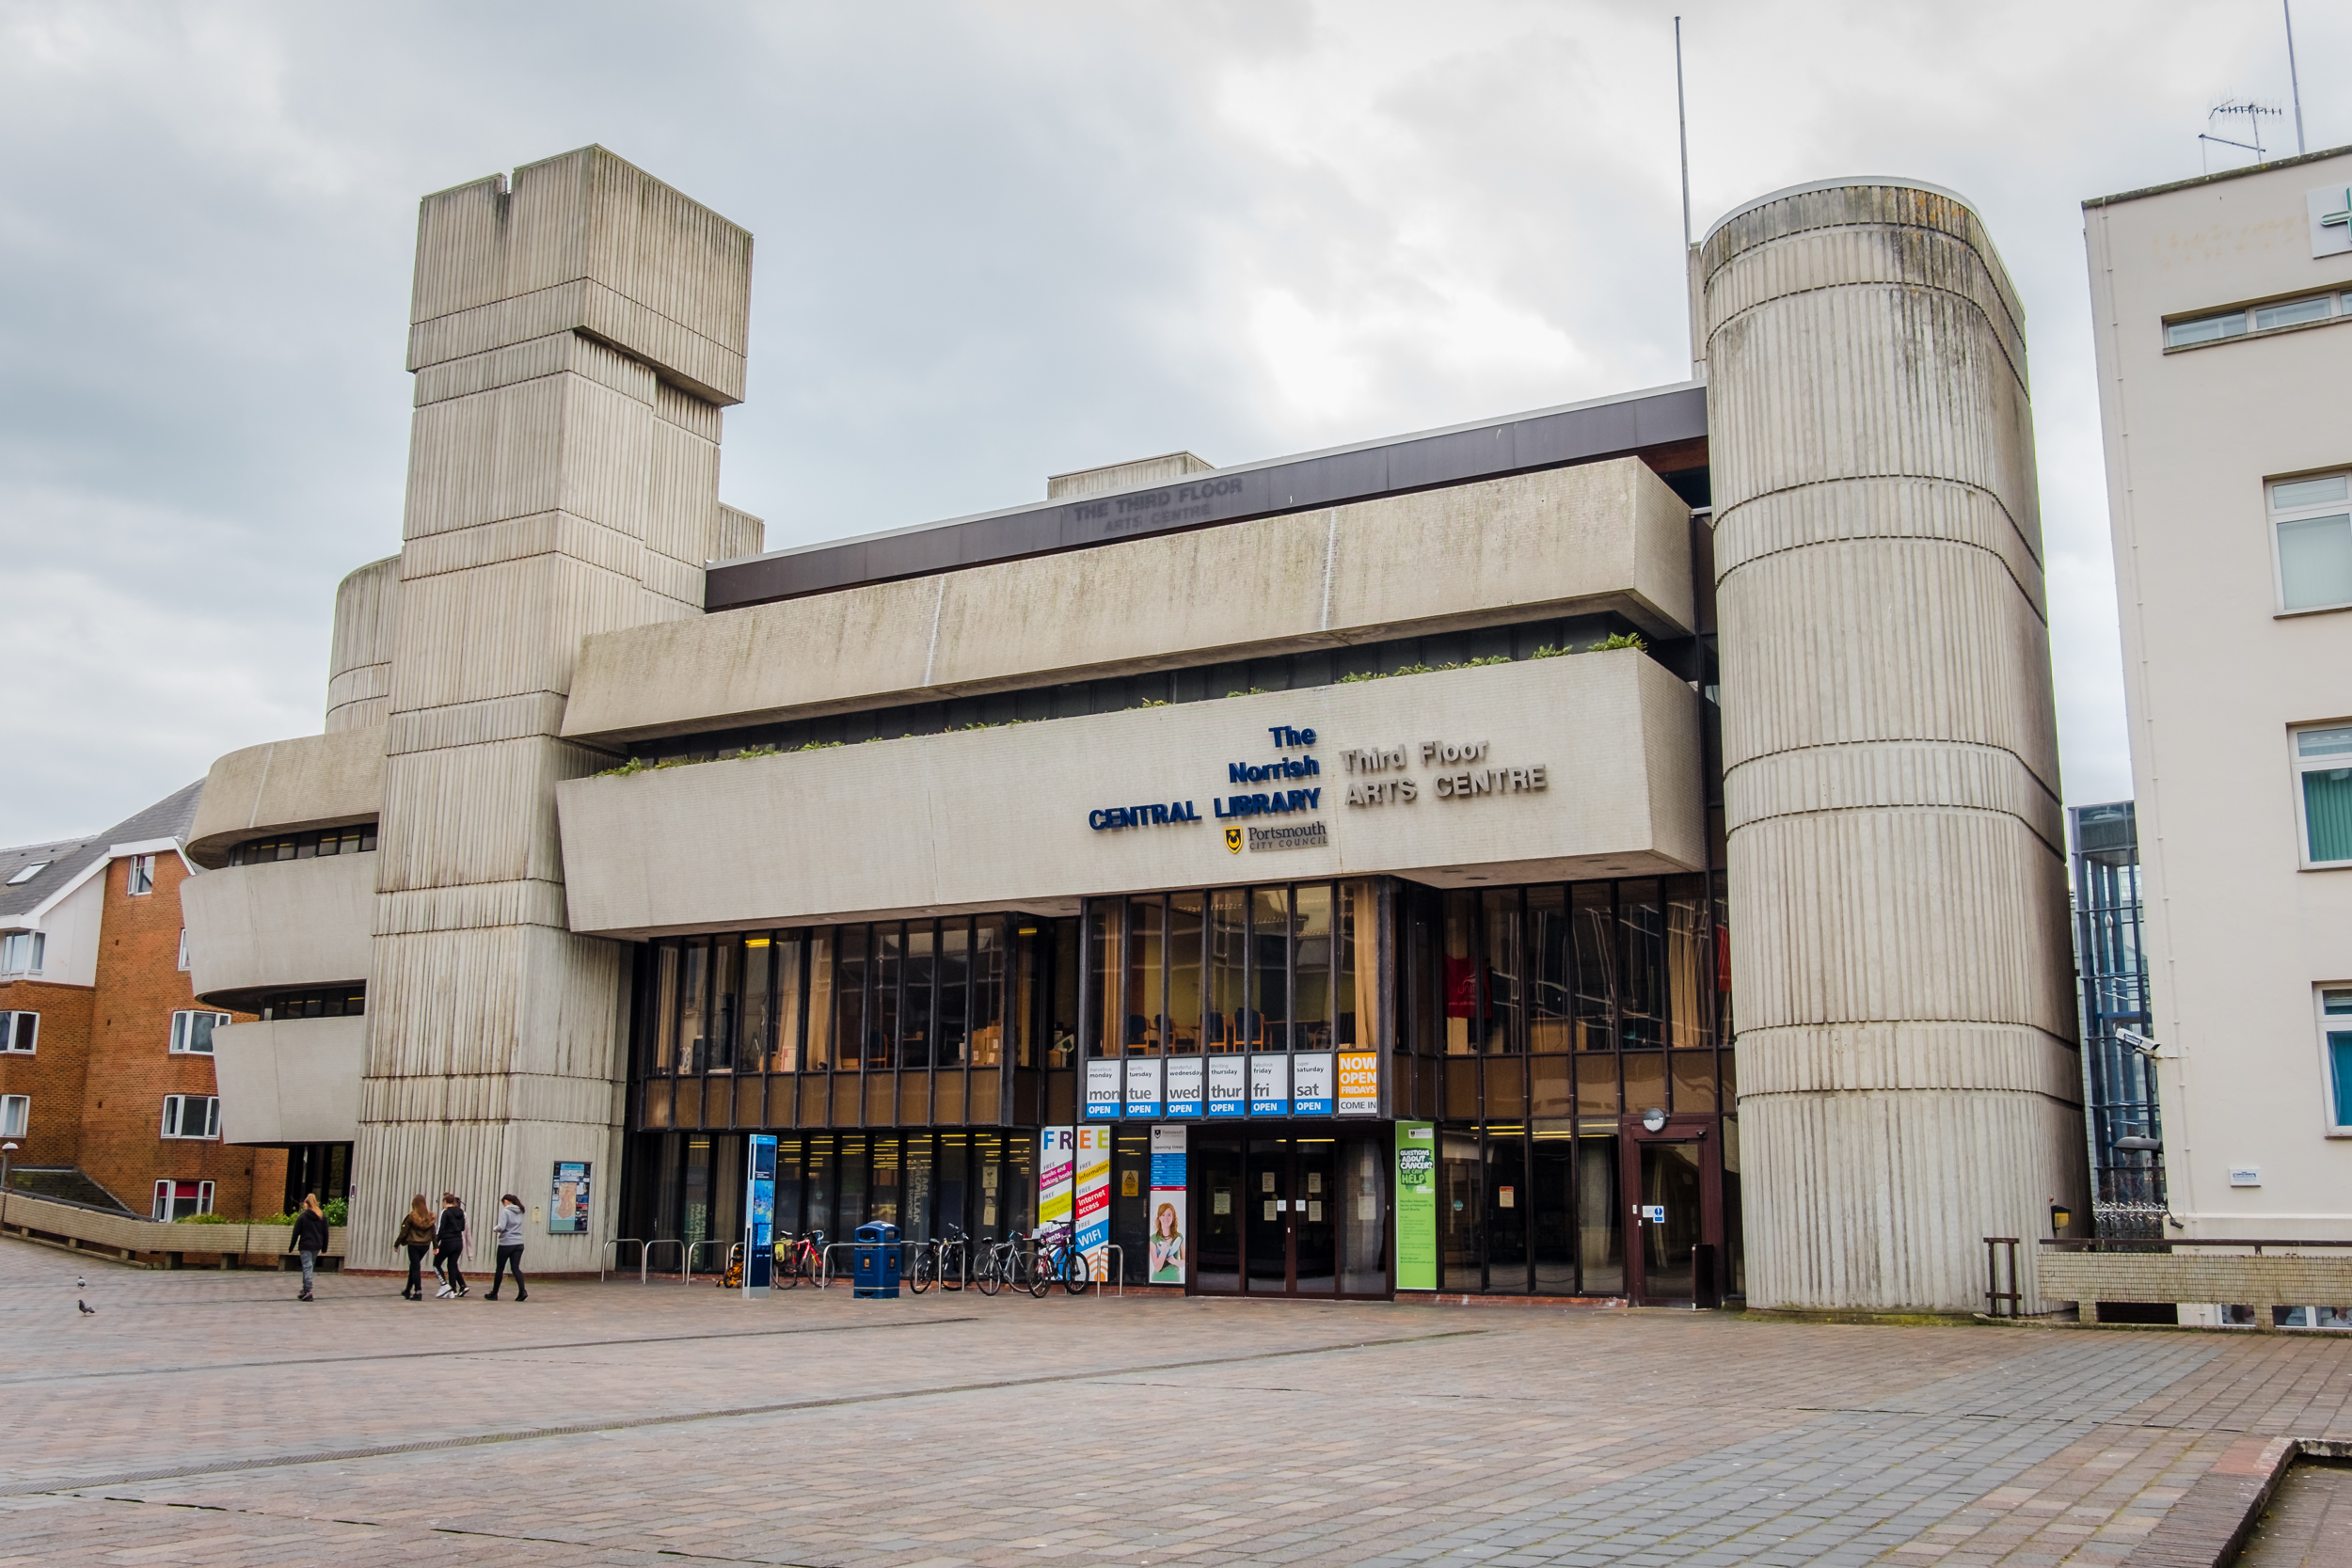 Photograph of the The Norrish Central Library, Portsmouth Guildhall Square, Portsmouth UK